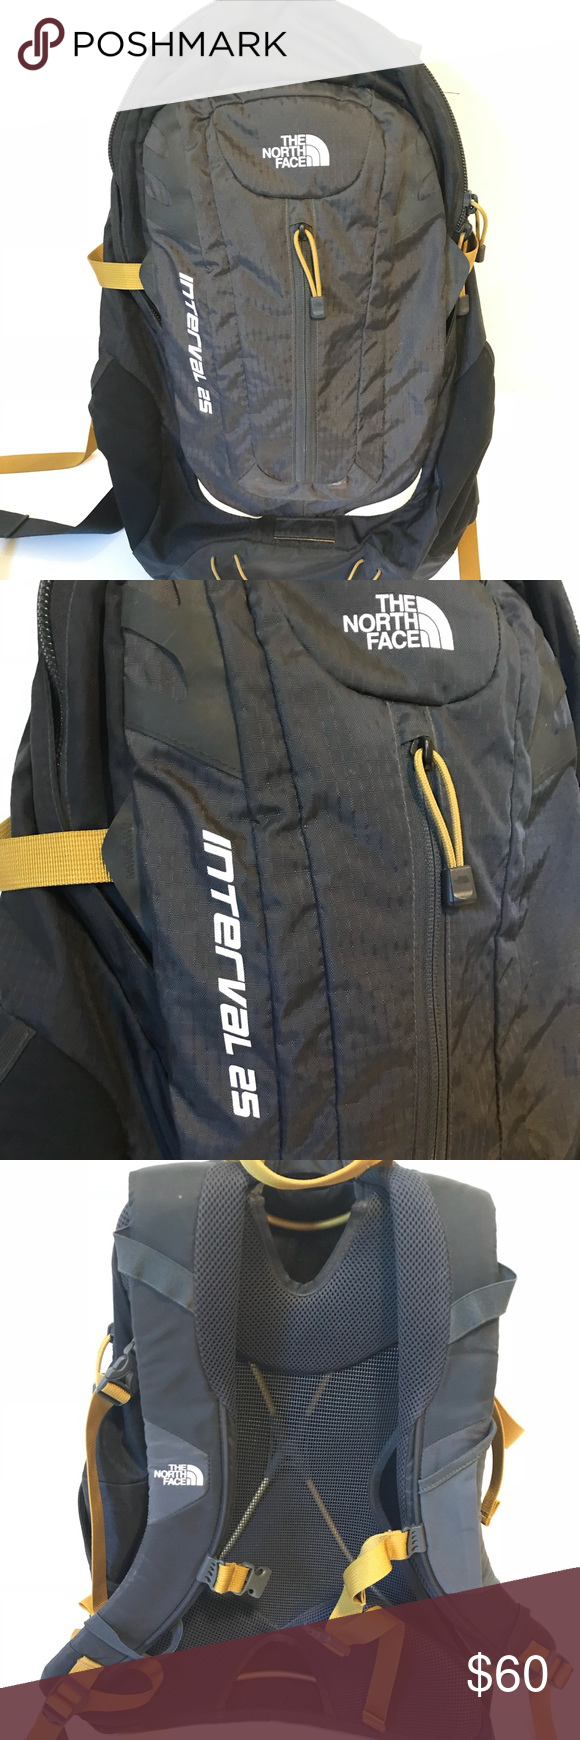 neueste auswahl attraktive Mode Geschicktes Design North Face Interval 25 Backpack Daypack Awesome for hiking ...